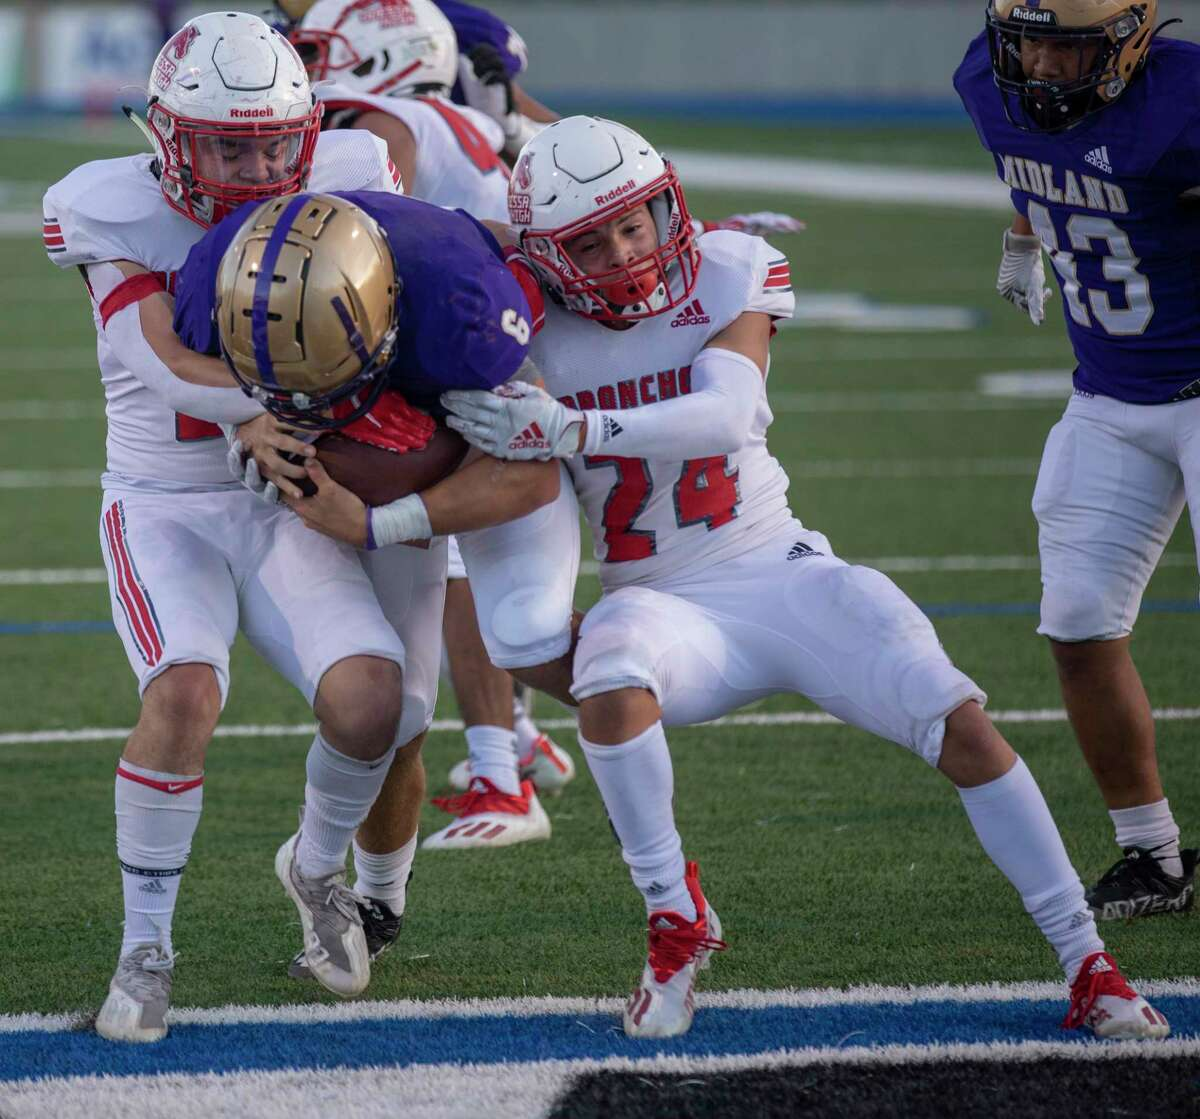 Midland High's Landry Walls (6) scores a touchdown as Odessa High's Zeke Garcia (24) and Mario Valdez attempt to tackle Friday, Sept. 24, 2021 at Grande Communications Stadium. Jacy Lewis/Reporter-Telegram